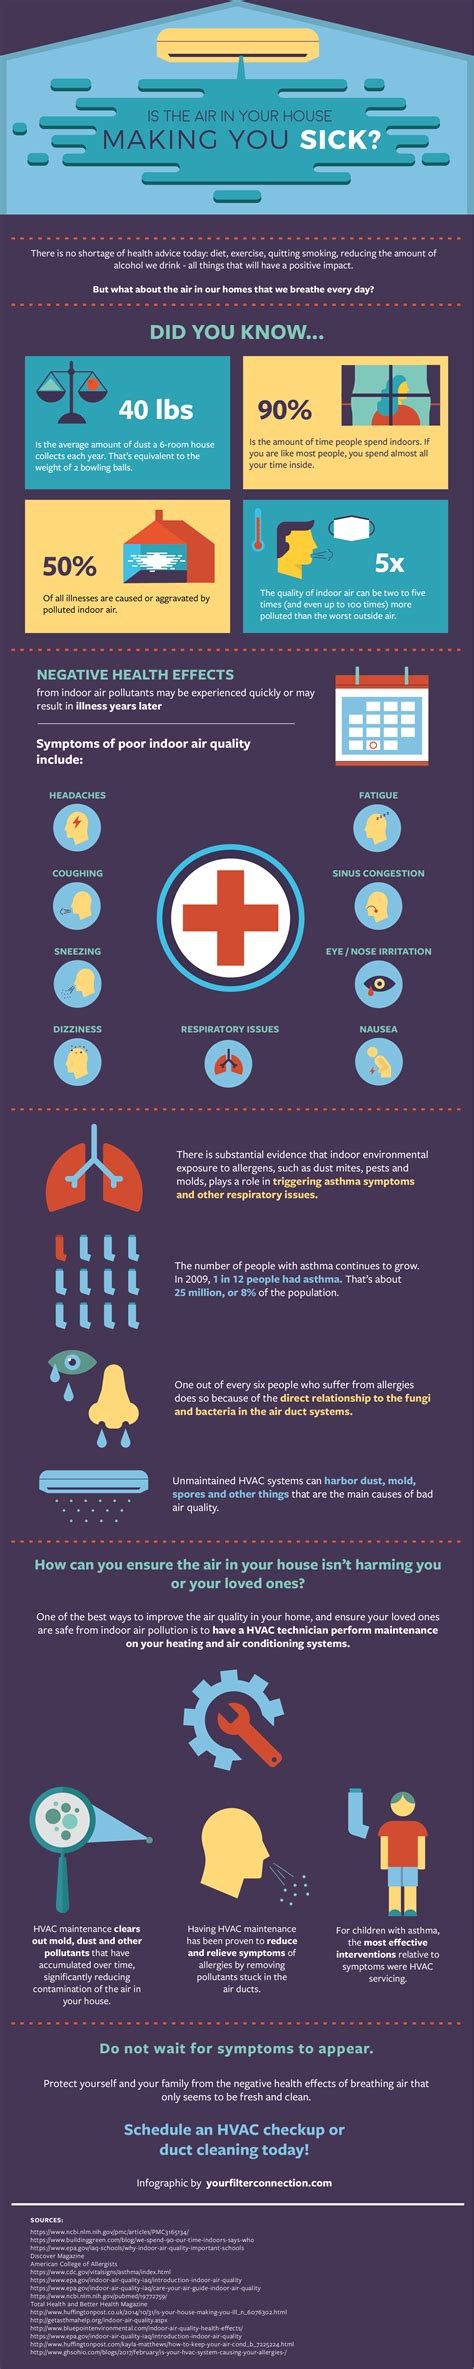 is my house making me sick is the air in your house making you sick infographic